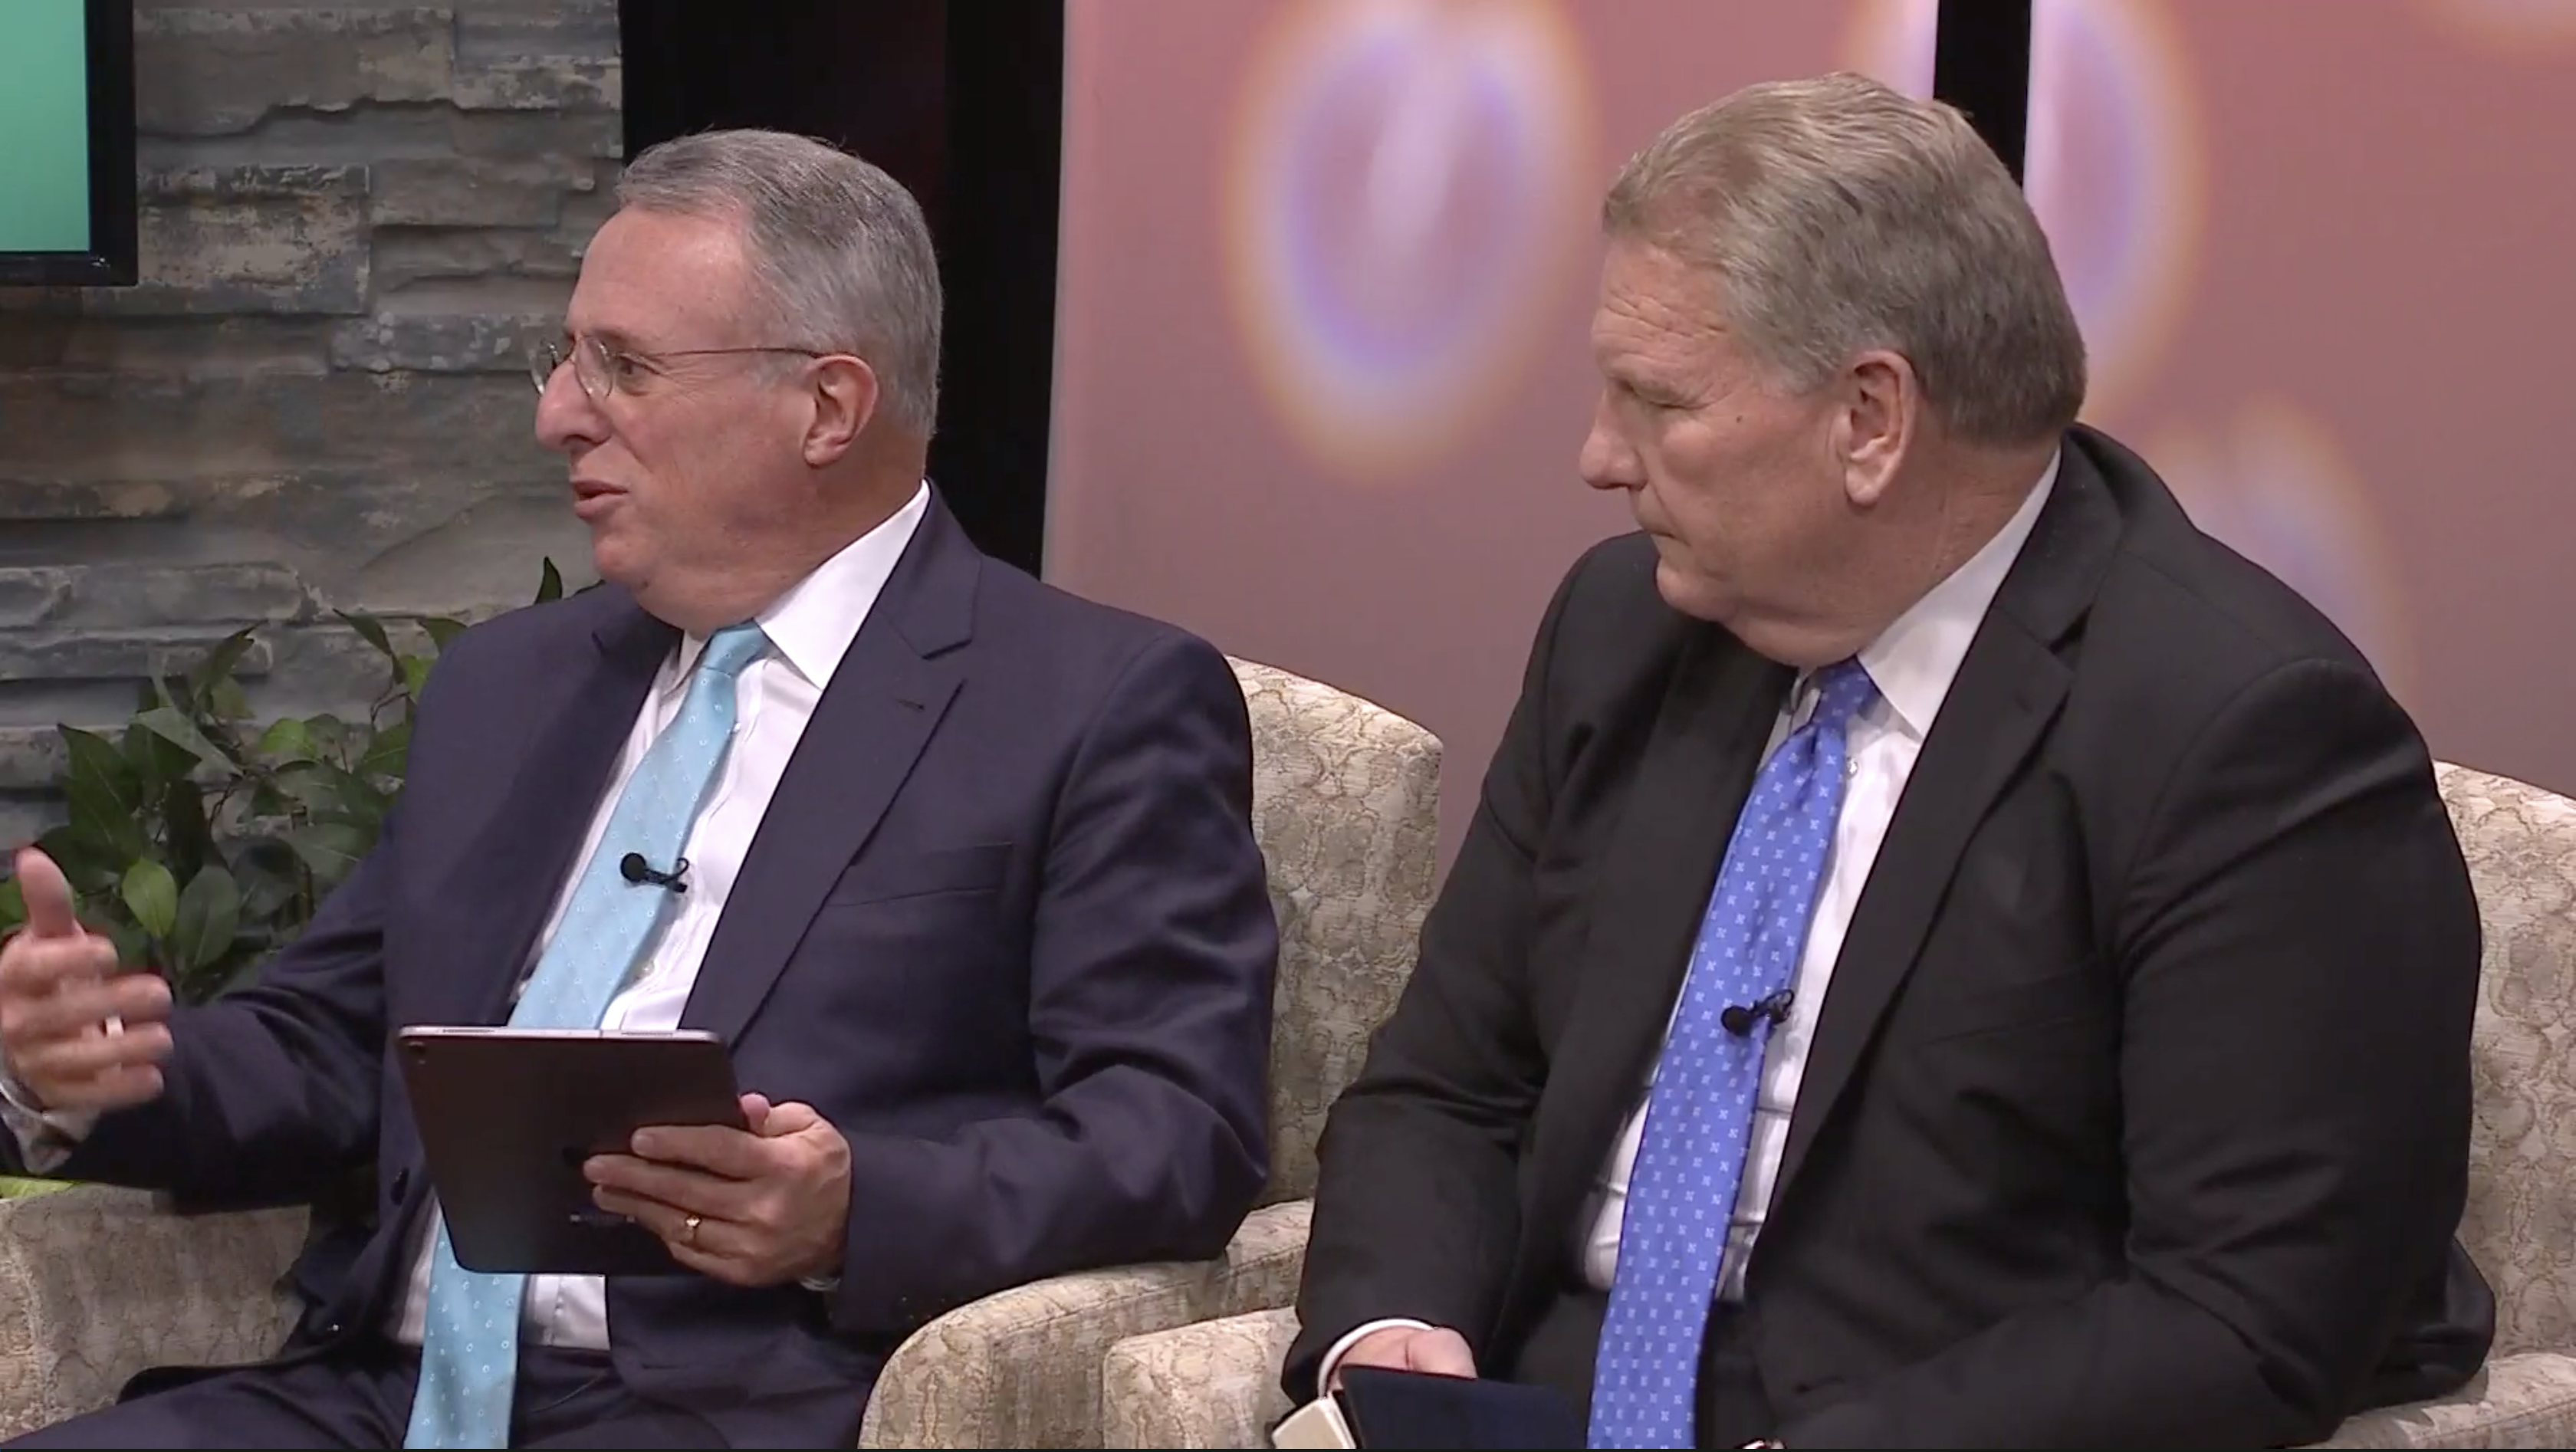 Elder Ulisses Soares and Elder Craig C. Christensen answer questions live from young adults during a Face to Face event on Sept. 15.